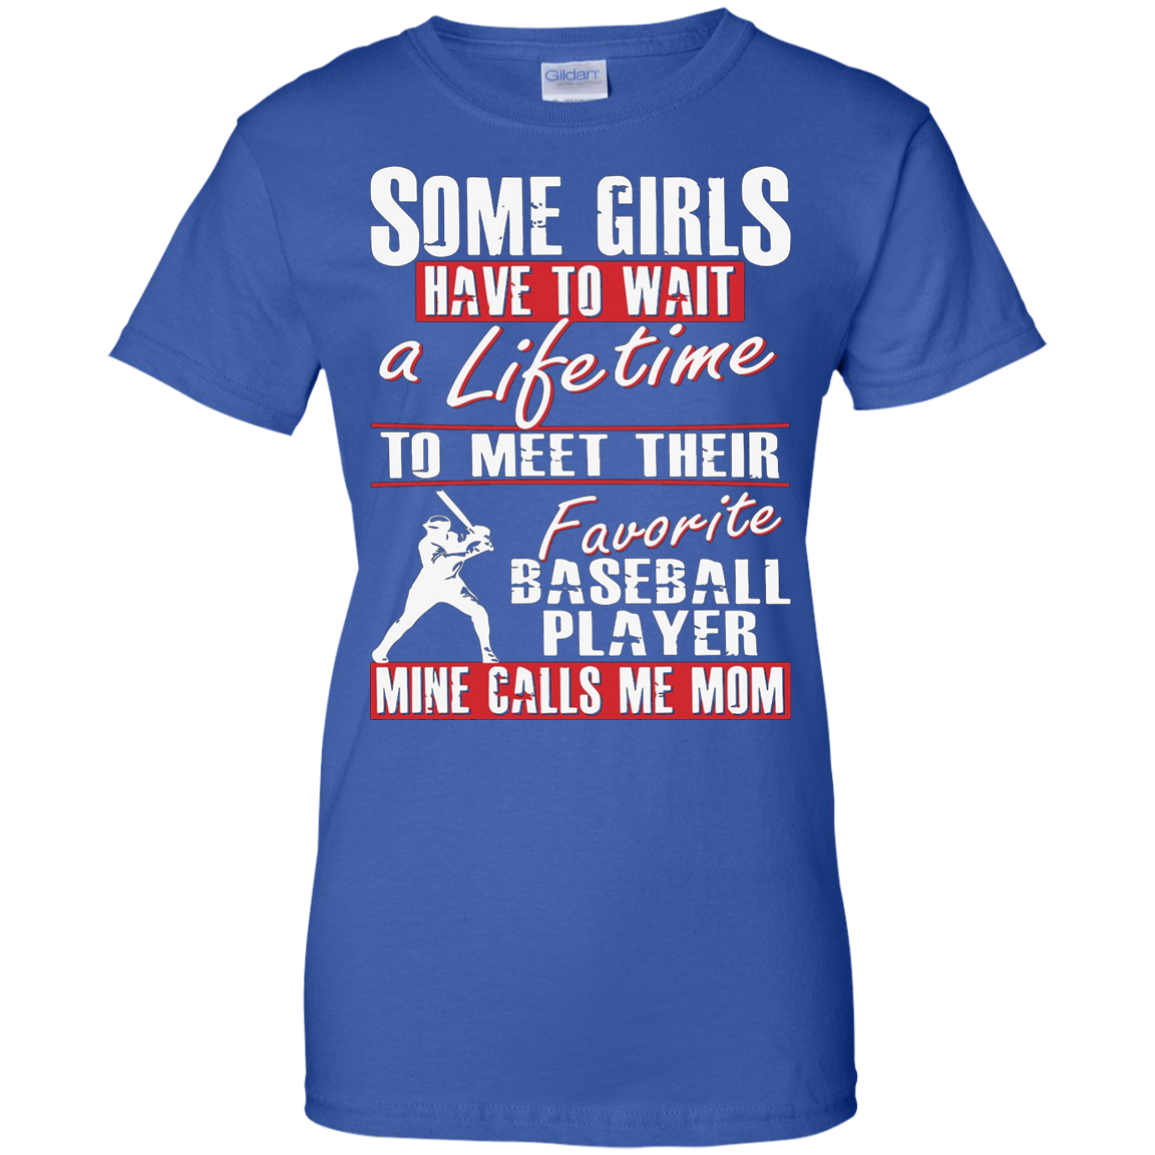 Baseball t shirt - Baseball Mom Dad Sister